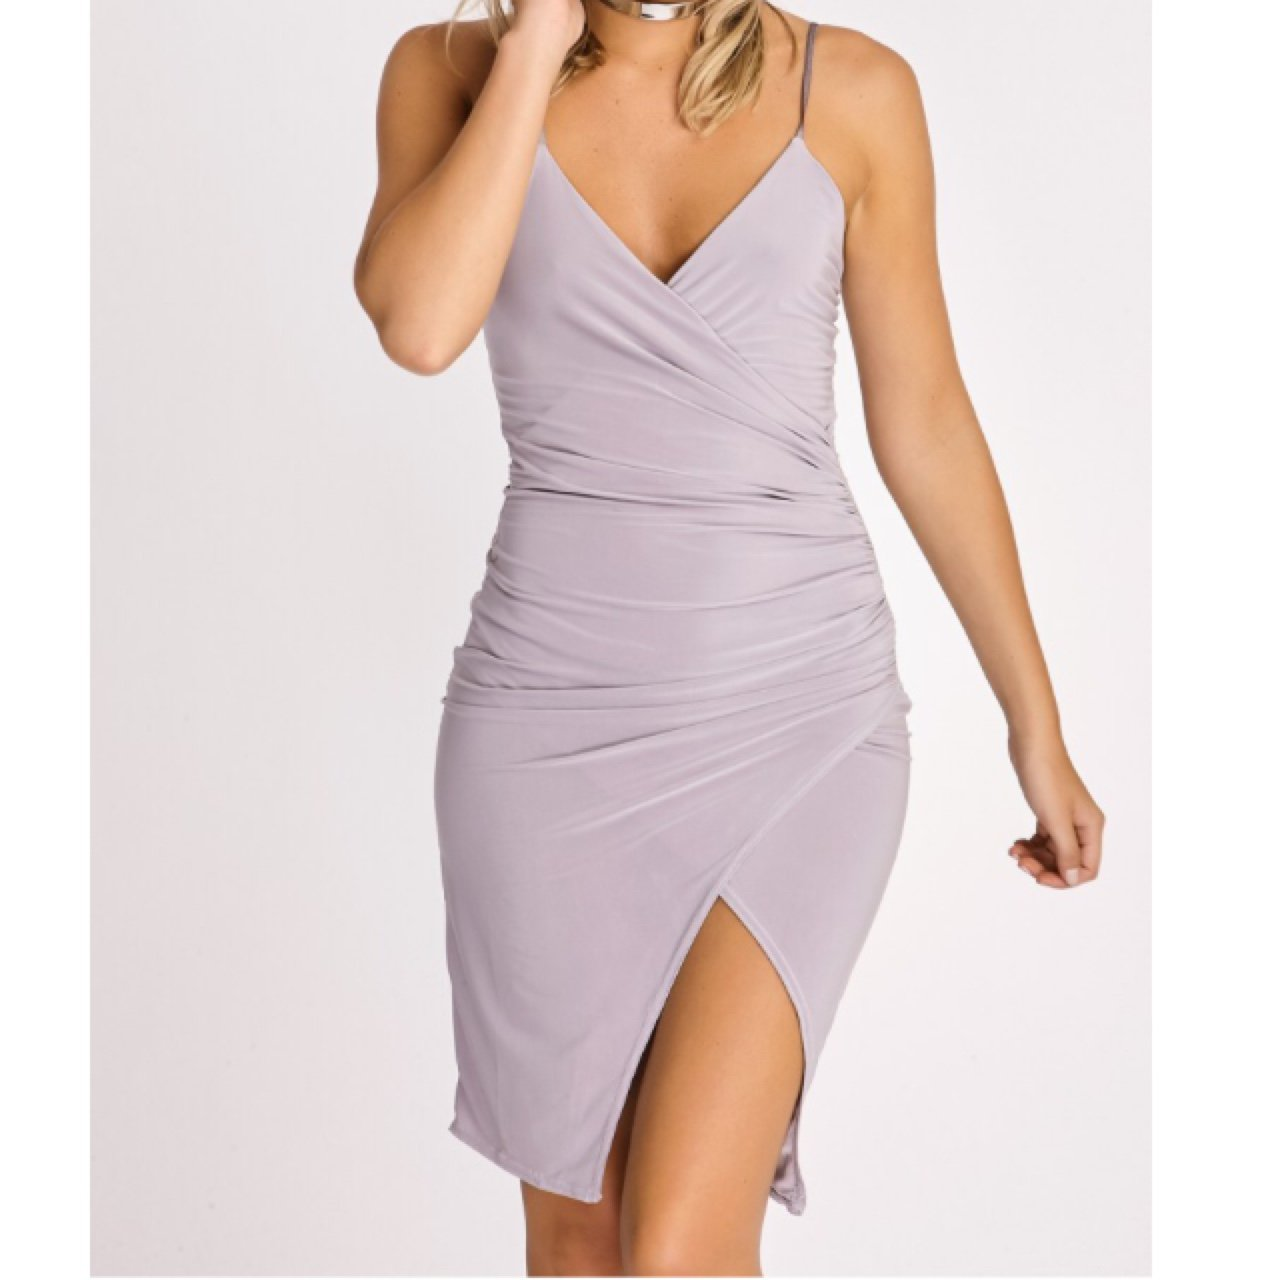 e2a88f3bb776 In The Style Grey silky slinky cross over dress. Never worn